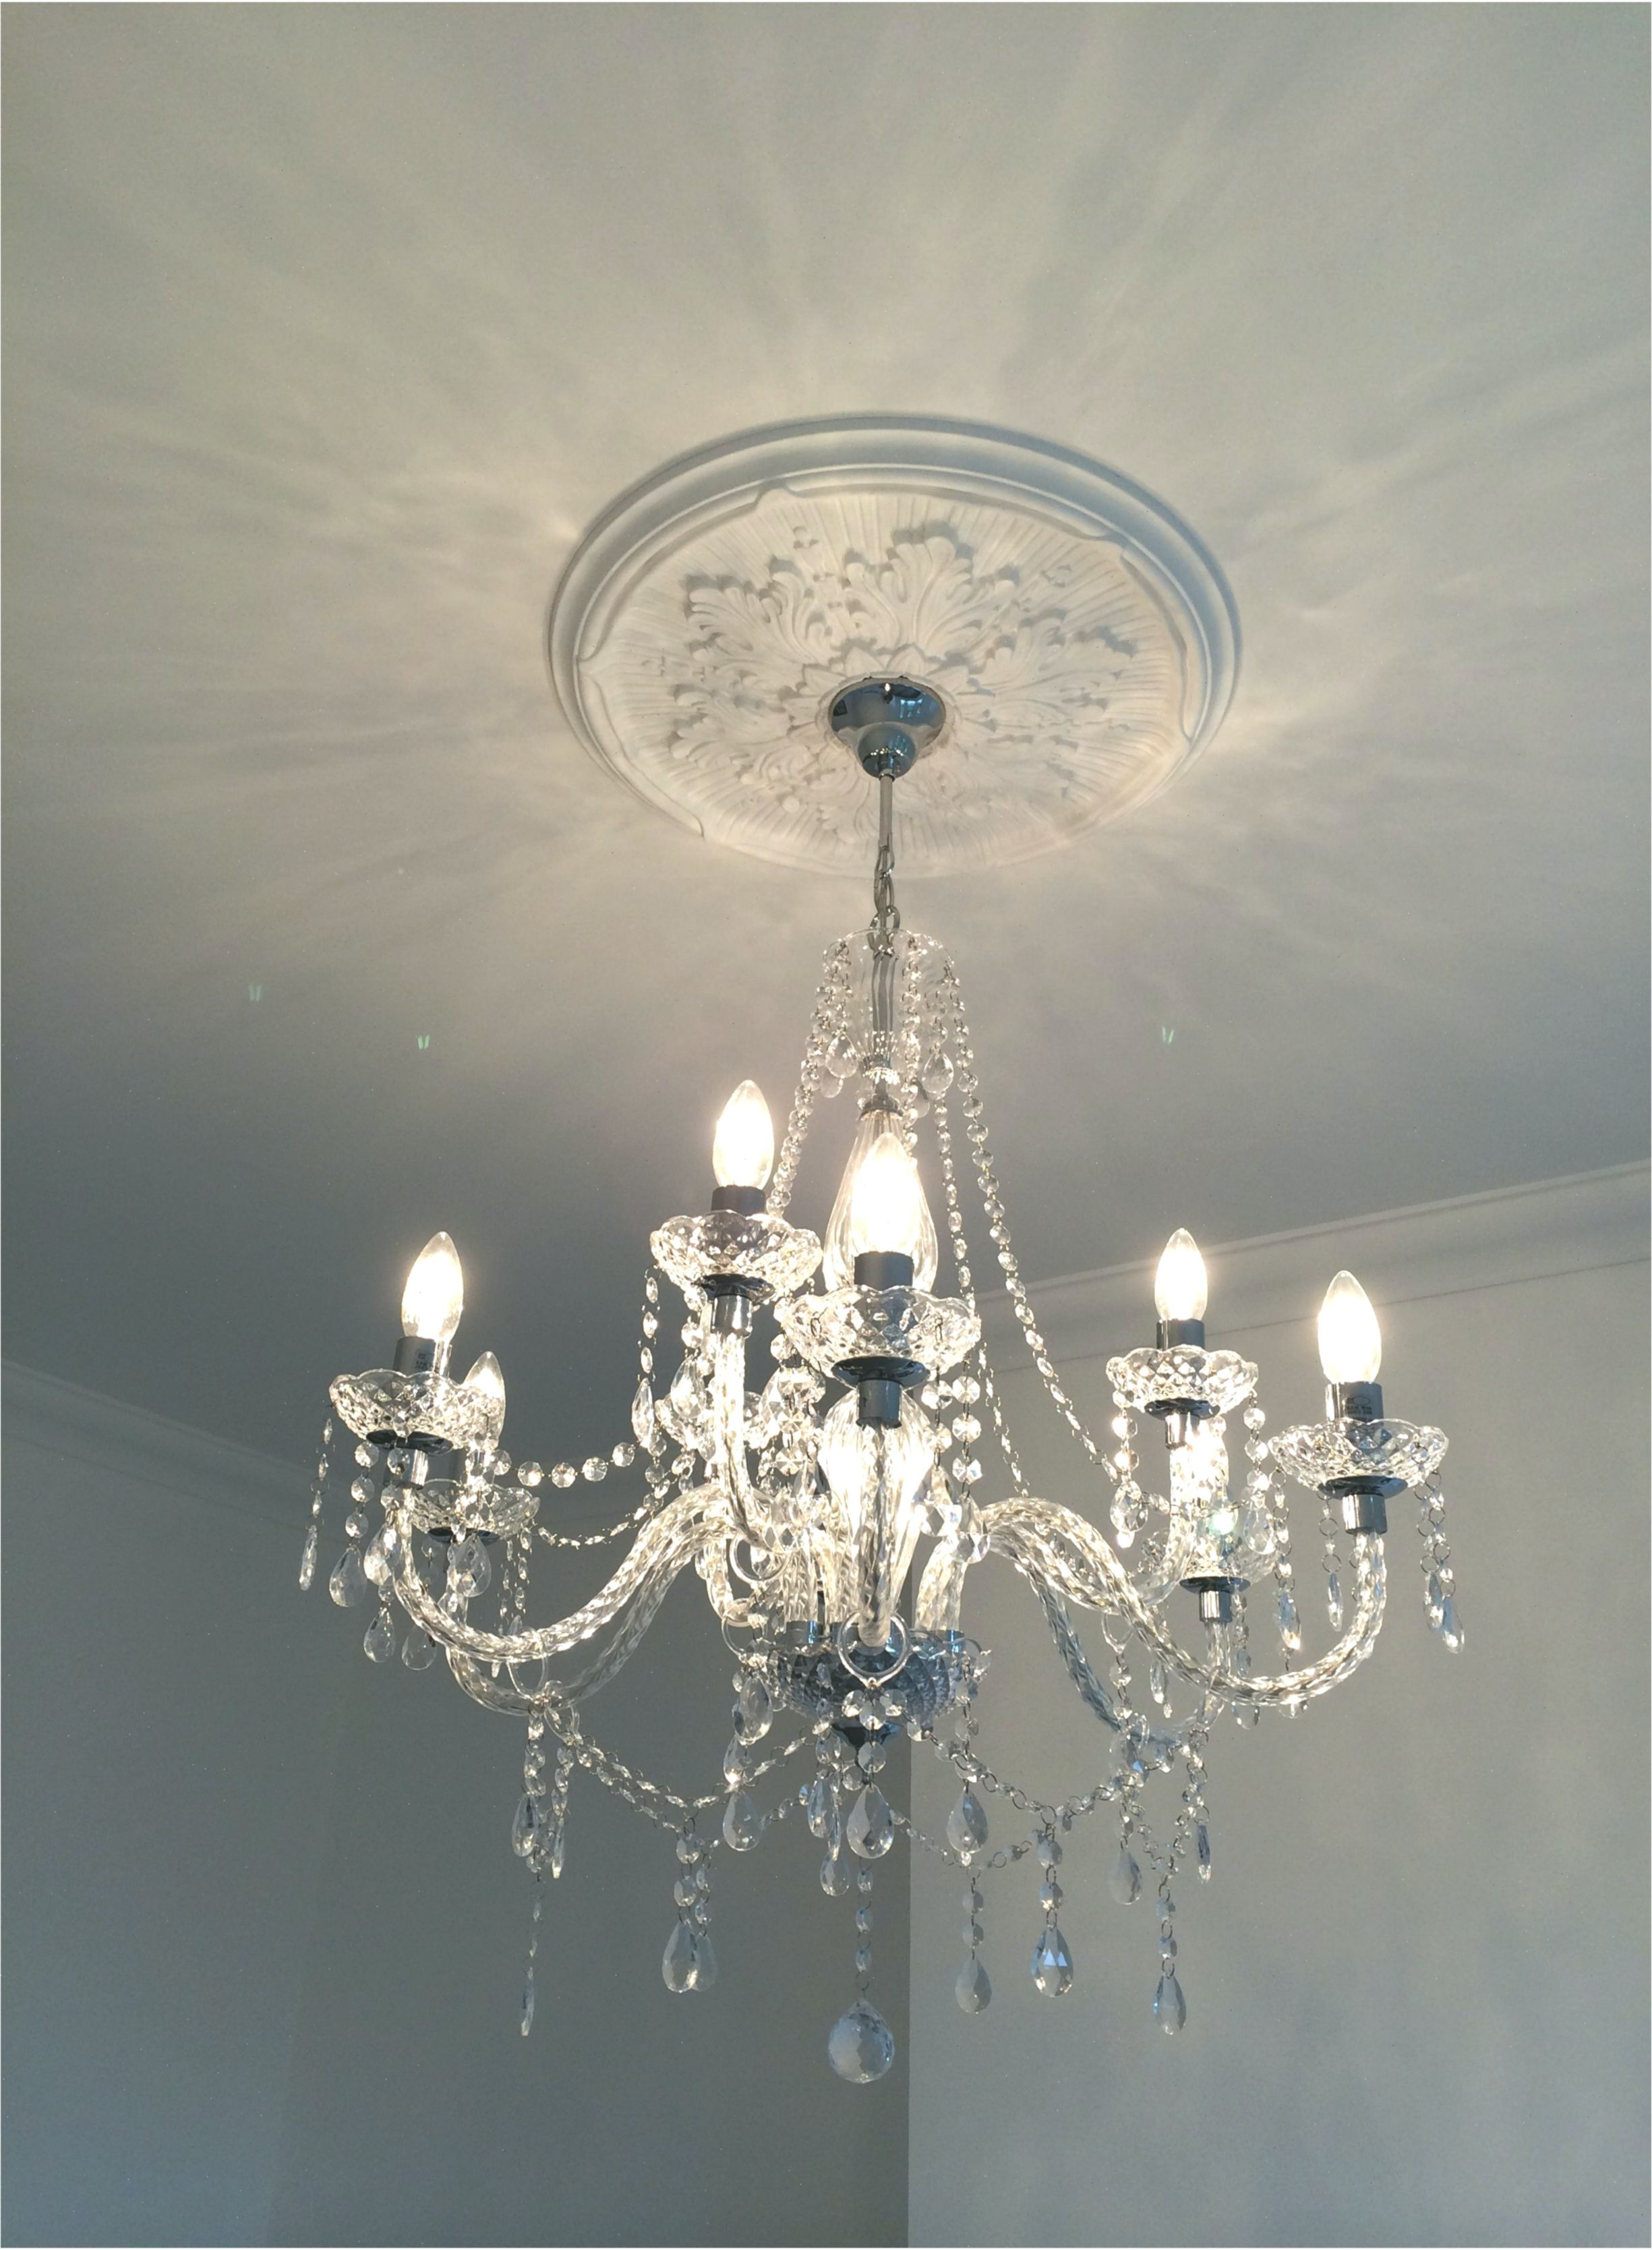 Victorian Ceiling Rose And Chandelier Victoriangothichomedecor Ceiling Chandelier Decor Gothic Goth Ceiling Rose Chandelier Makeover Victorian Chandelier